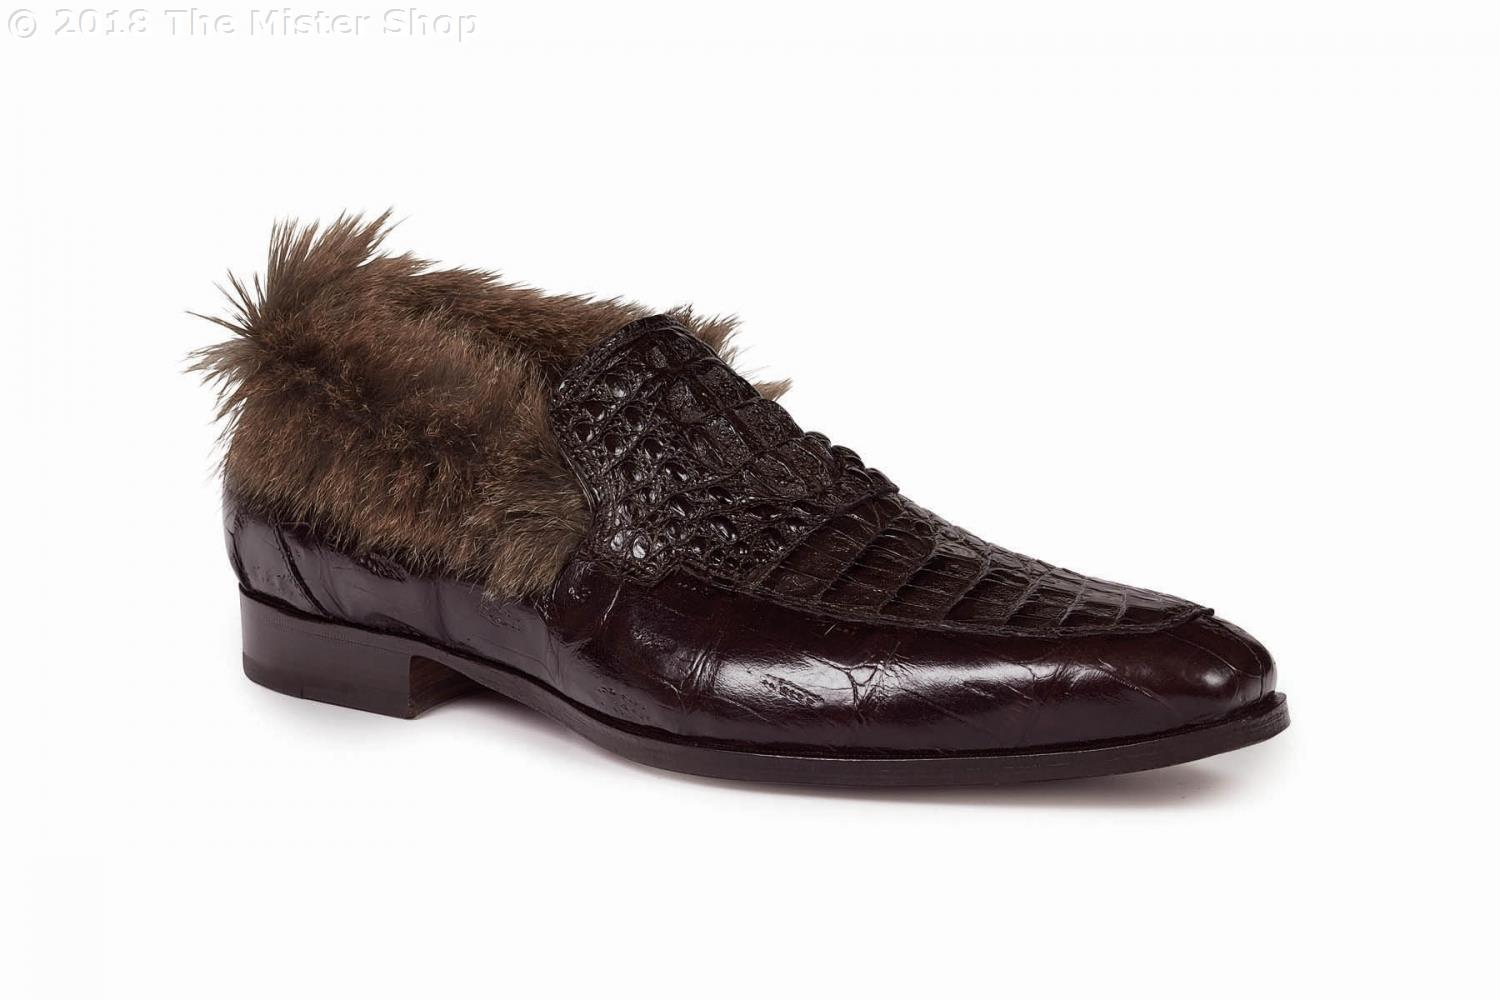 Fall 2018 Mauri Romeo Baby Croc Hornback Crown Fur Trim Slip On Dark Brown 4615